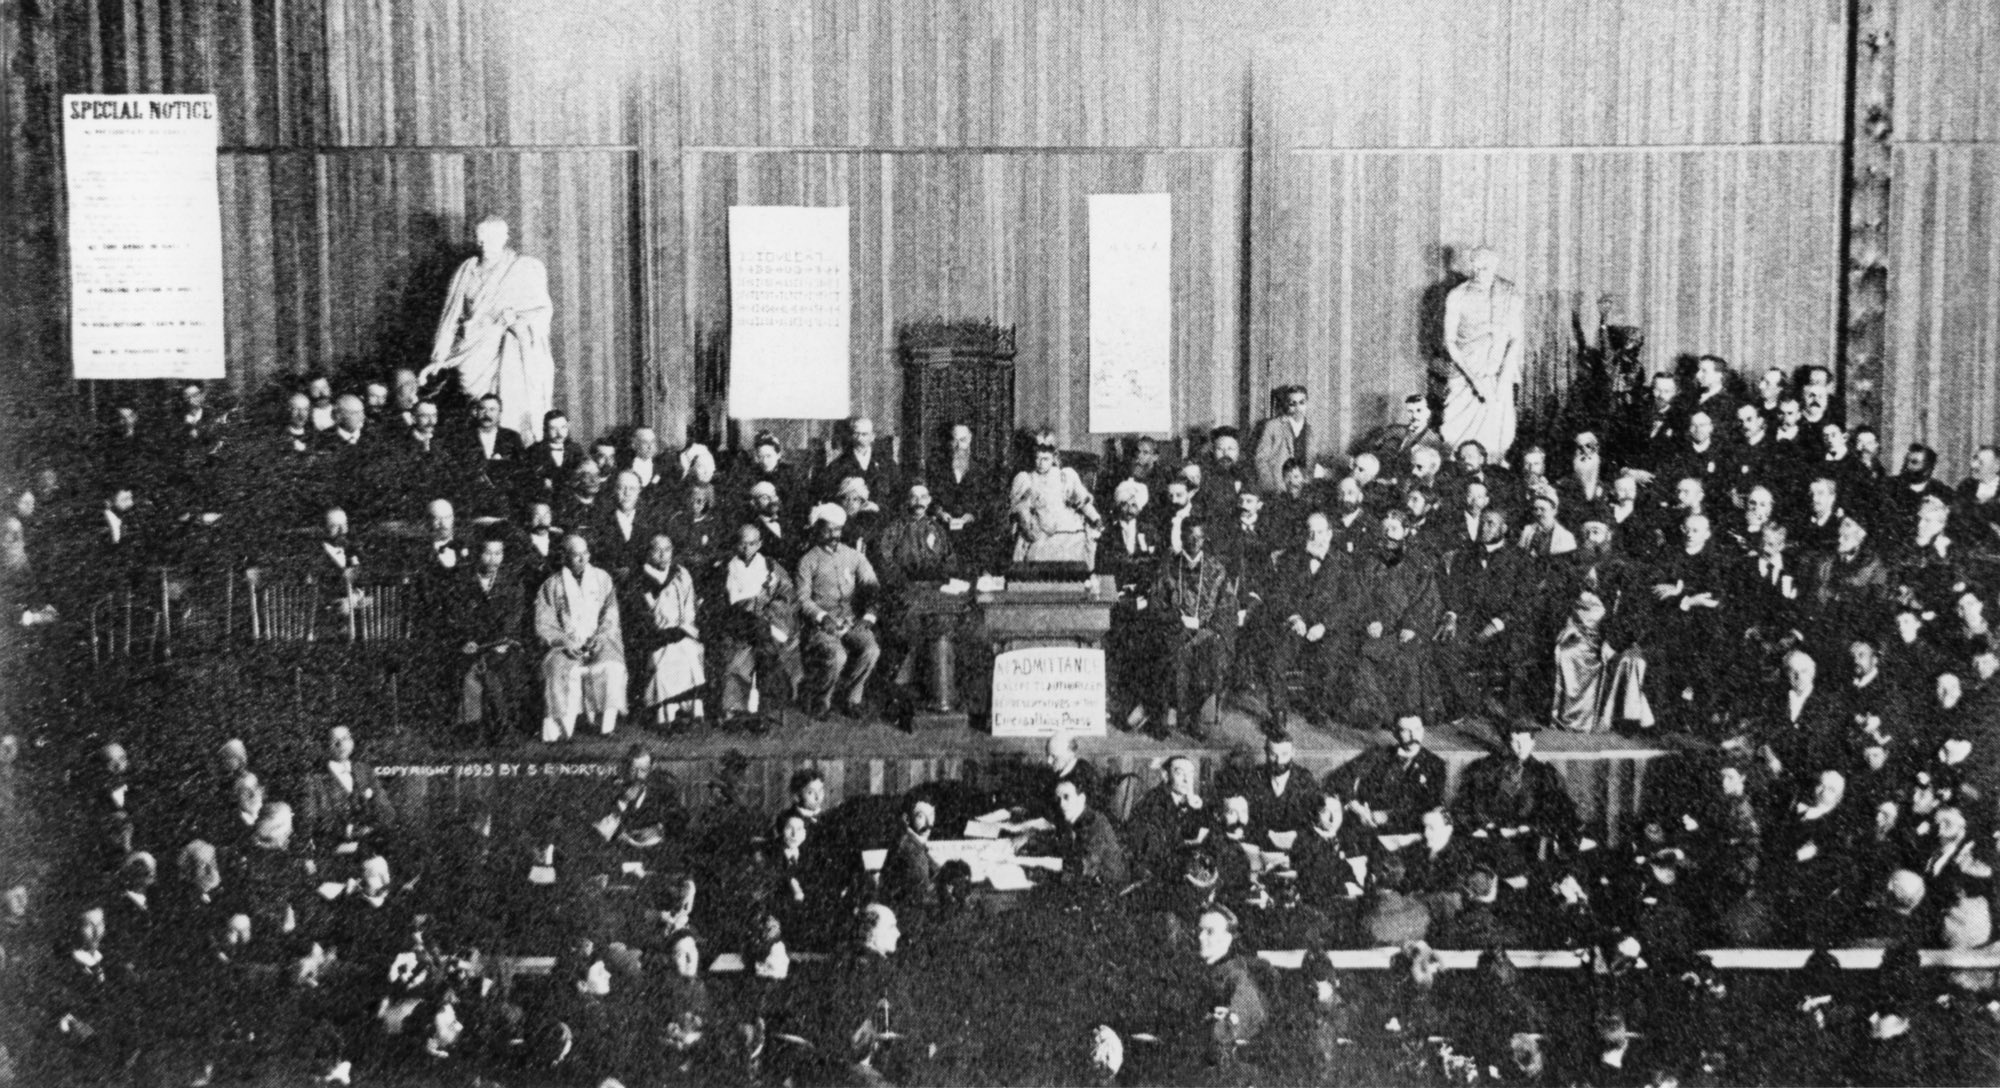 (#28) Chicago, September 1893. This photo was taken during the closing session of the Parliament of Religions, on the evening of September 27.